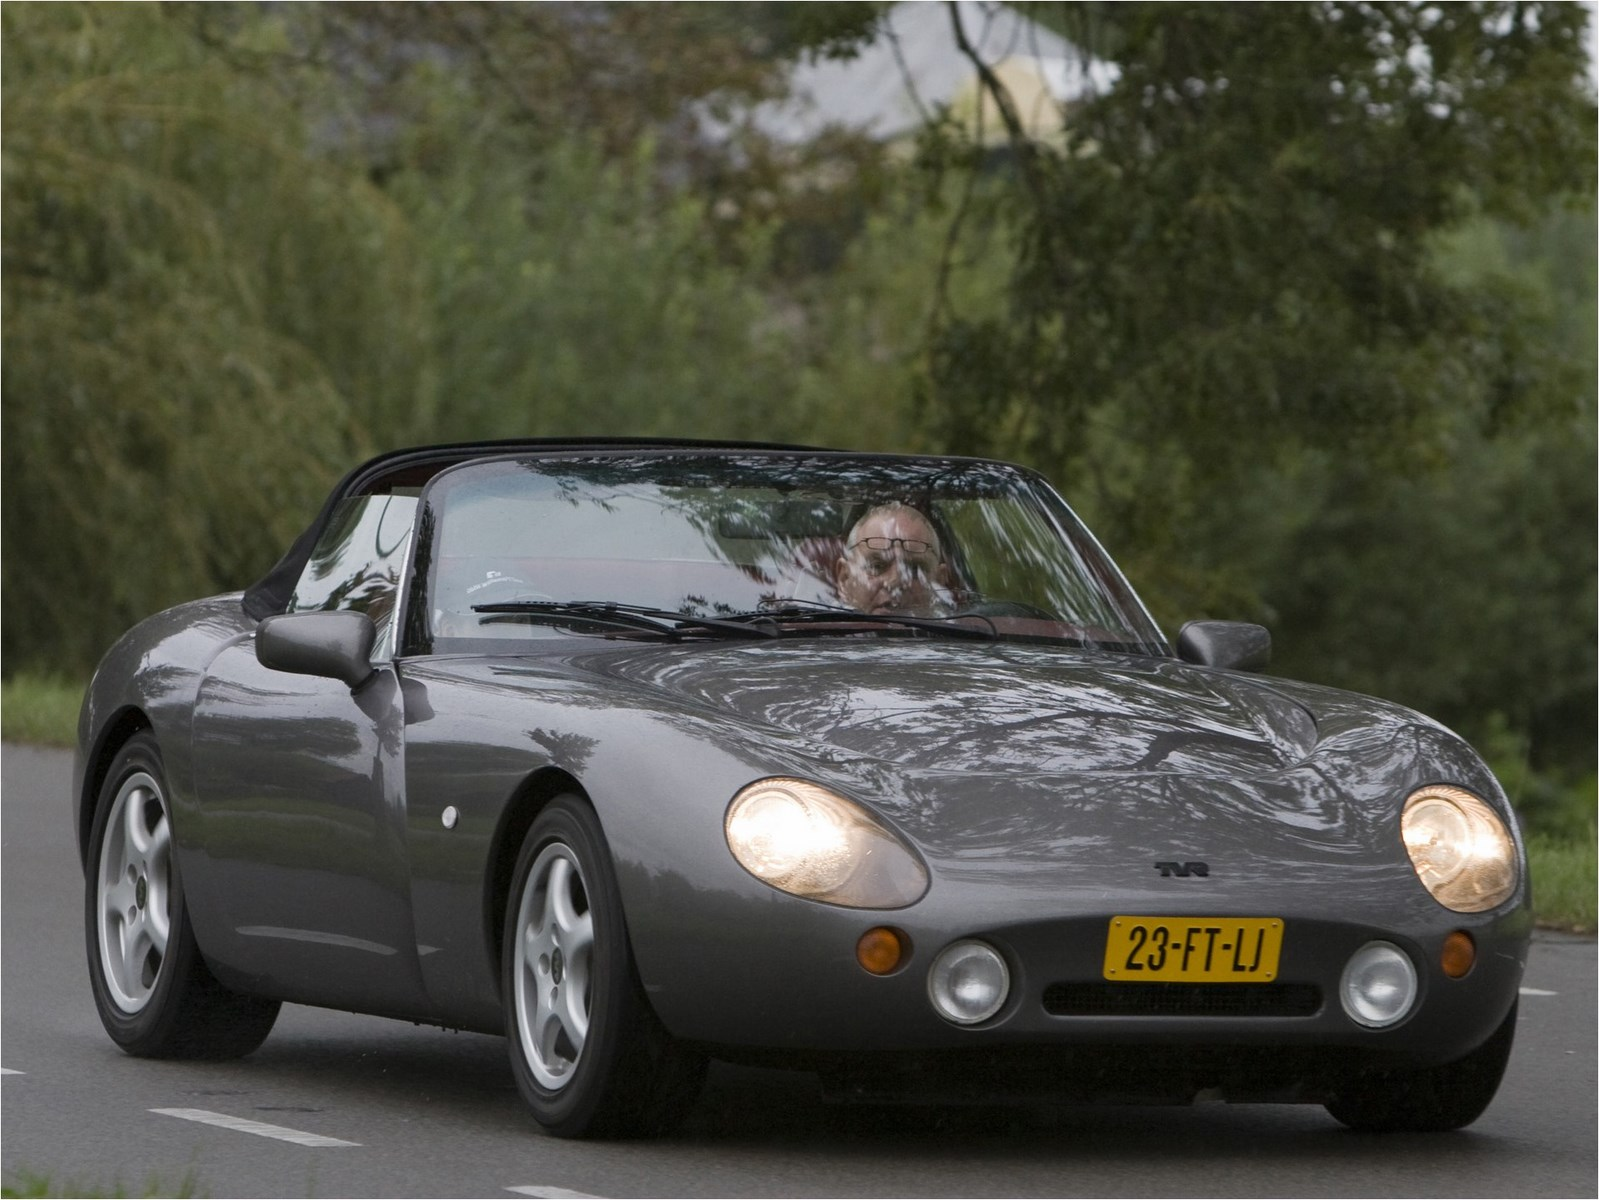 1990 TVR Griffith #20